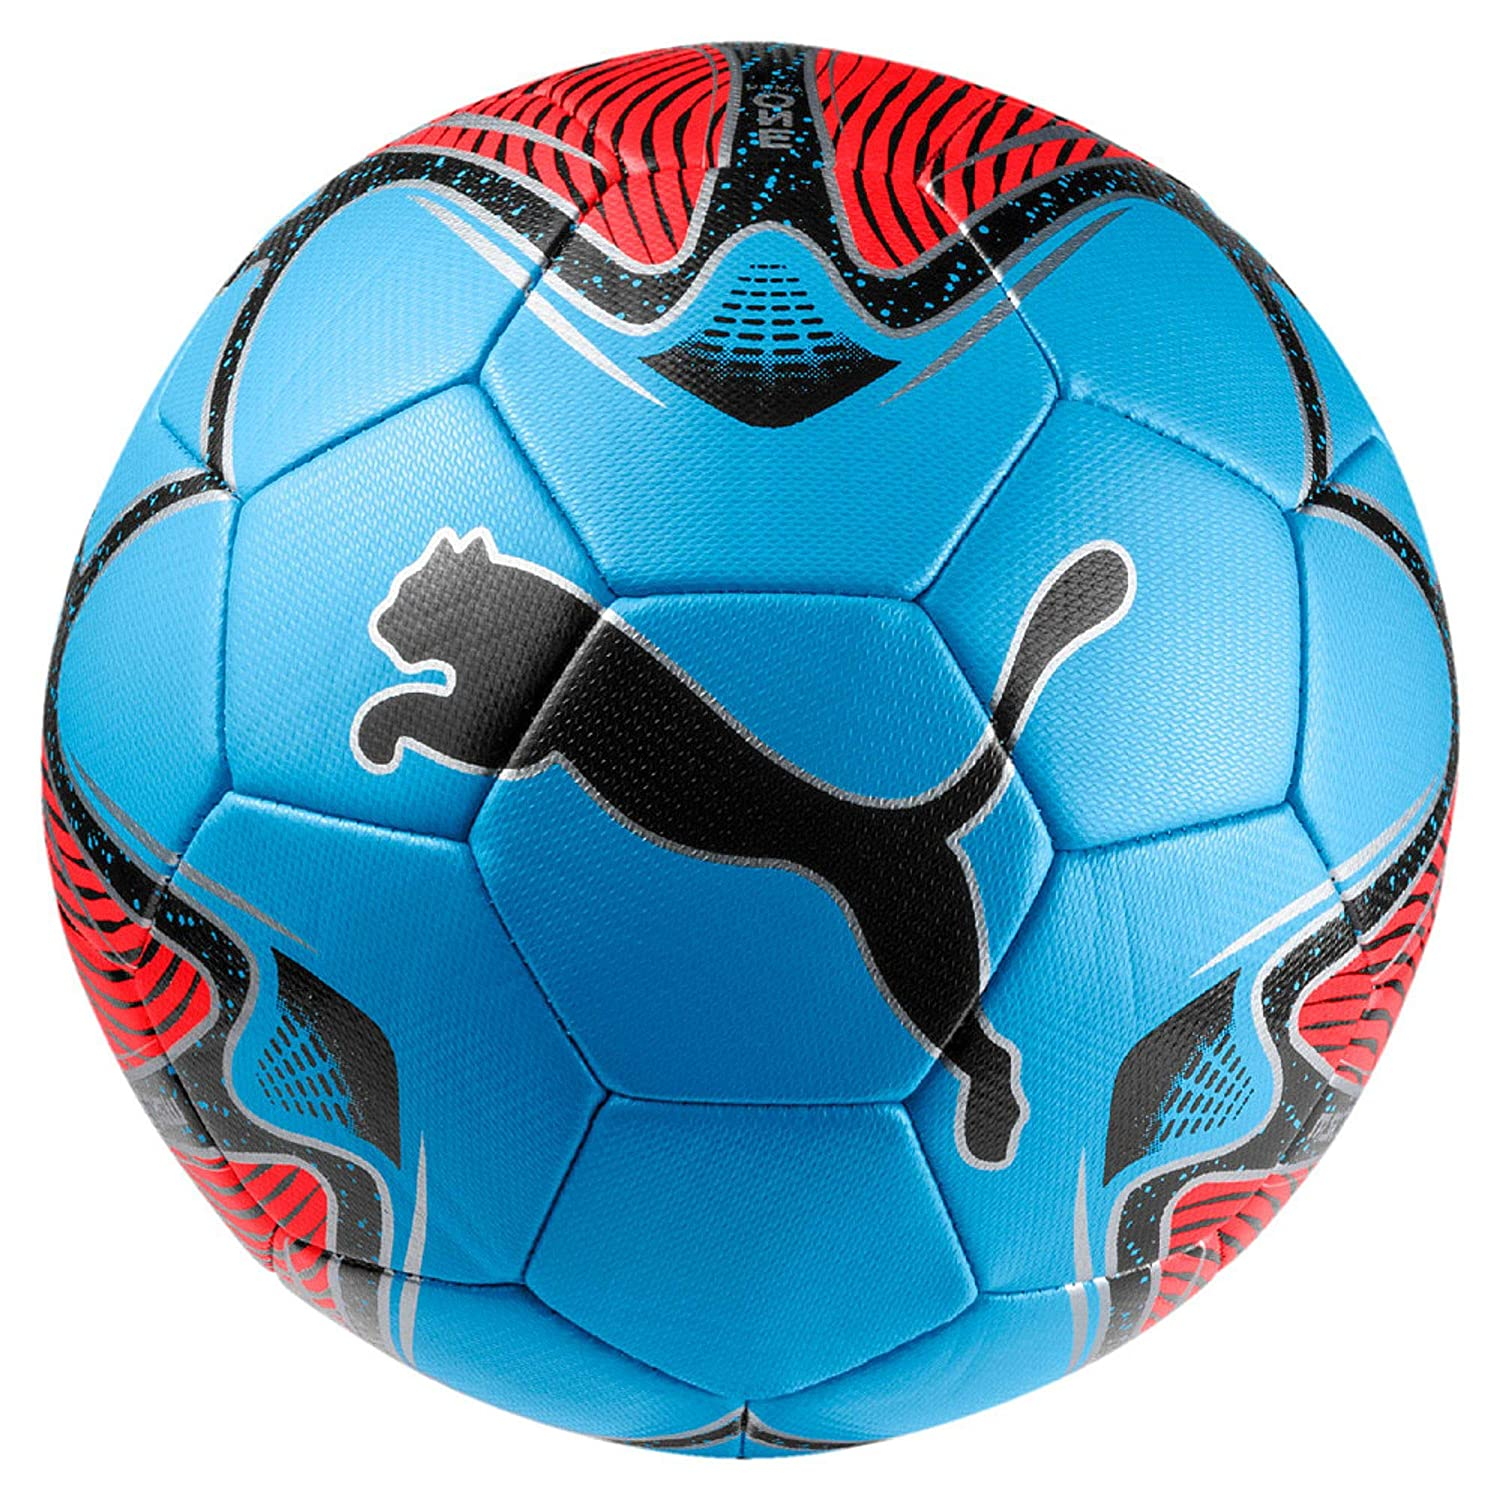 Puma One Star Ball Balón de Fútbol, Unisex Adulto, Red Blast/Bleu ...